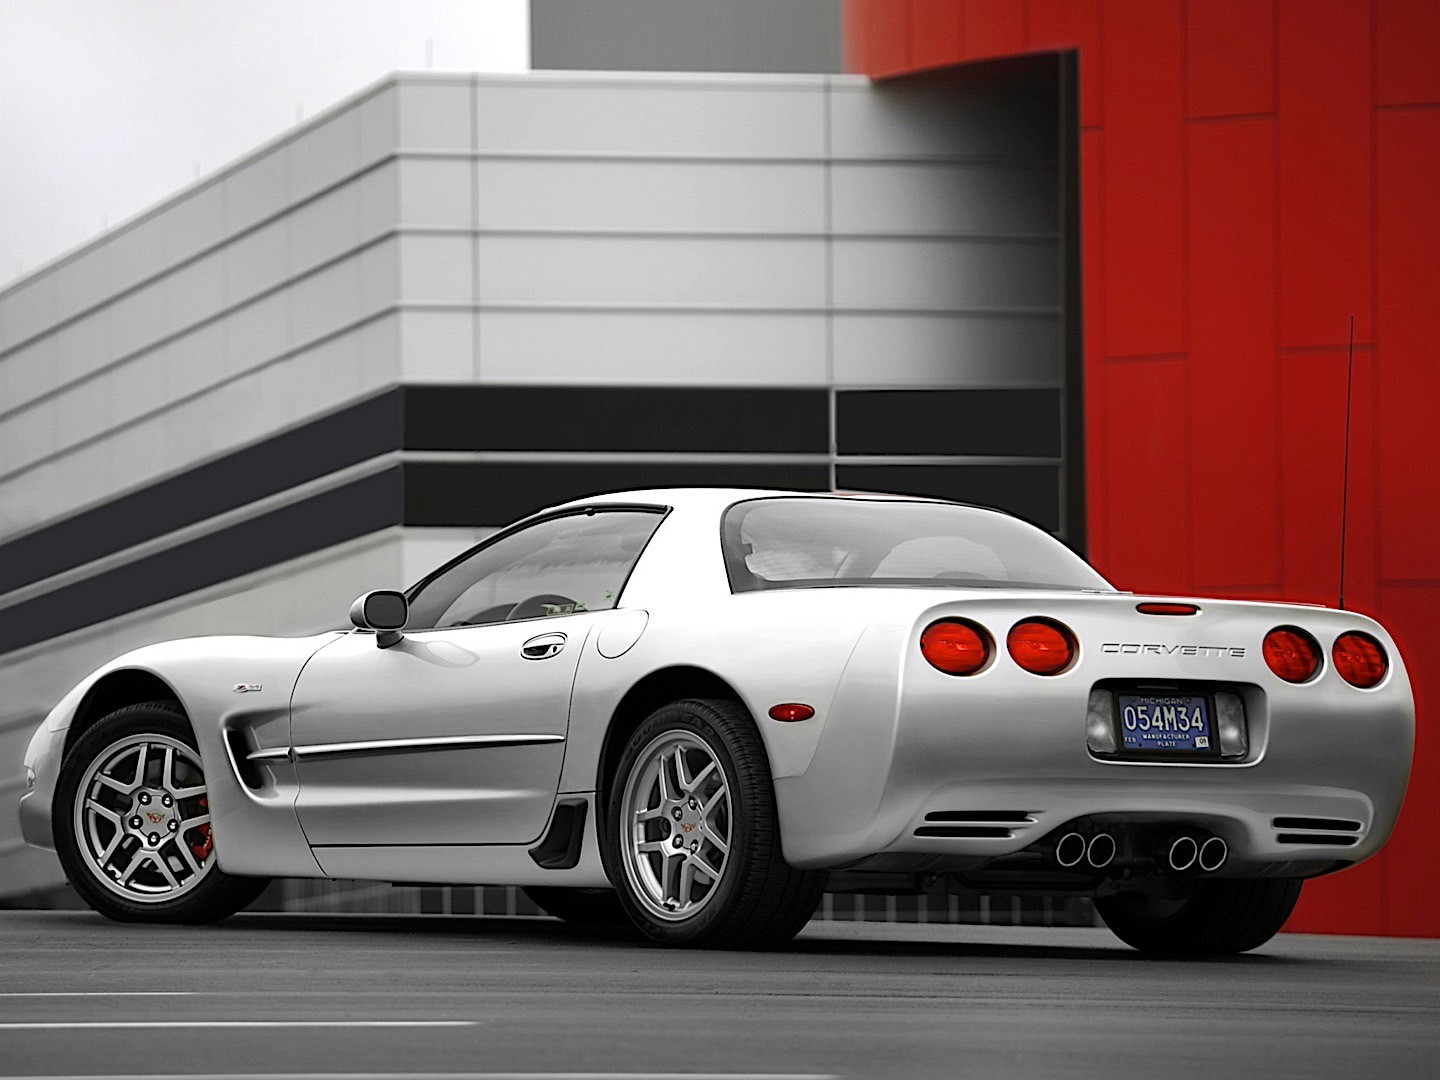 Chevrolet Corvette Stingray >> CHEVROLET Corvette C5 Z06 specs & photos - 2001, 2002, 2003, 2004 - autoevolution